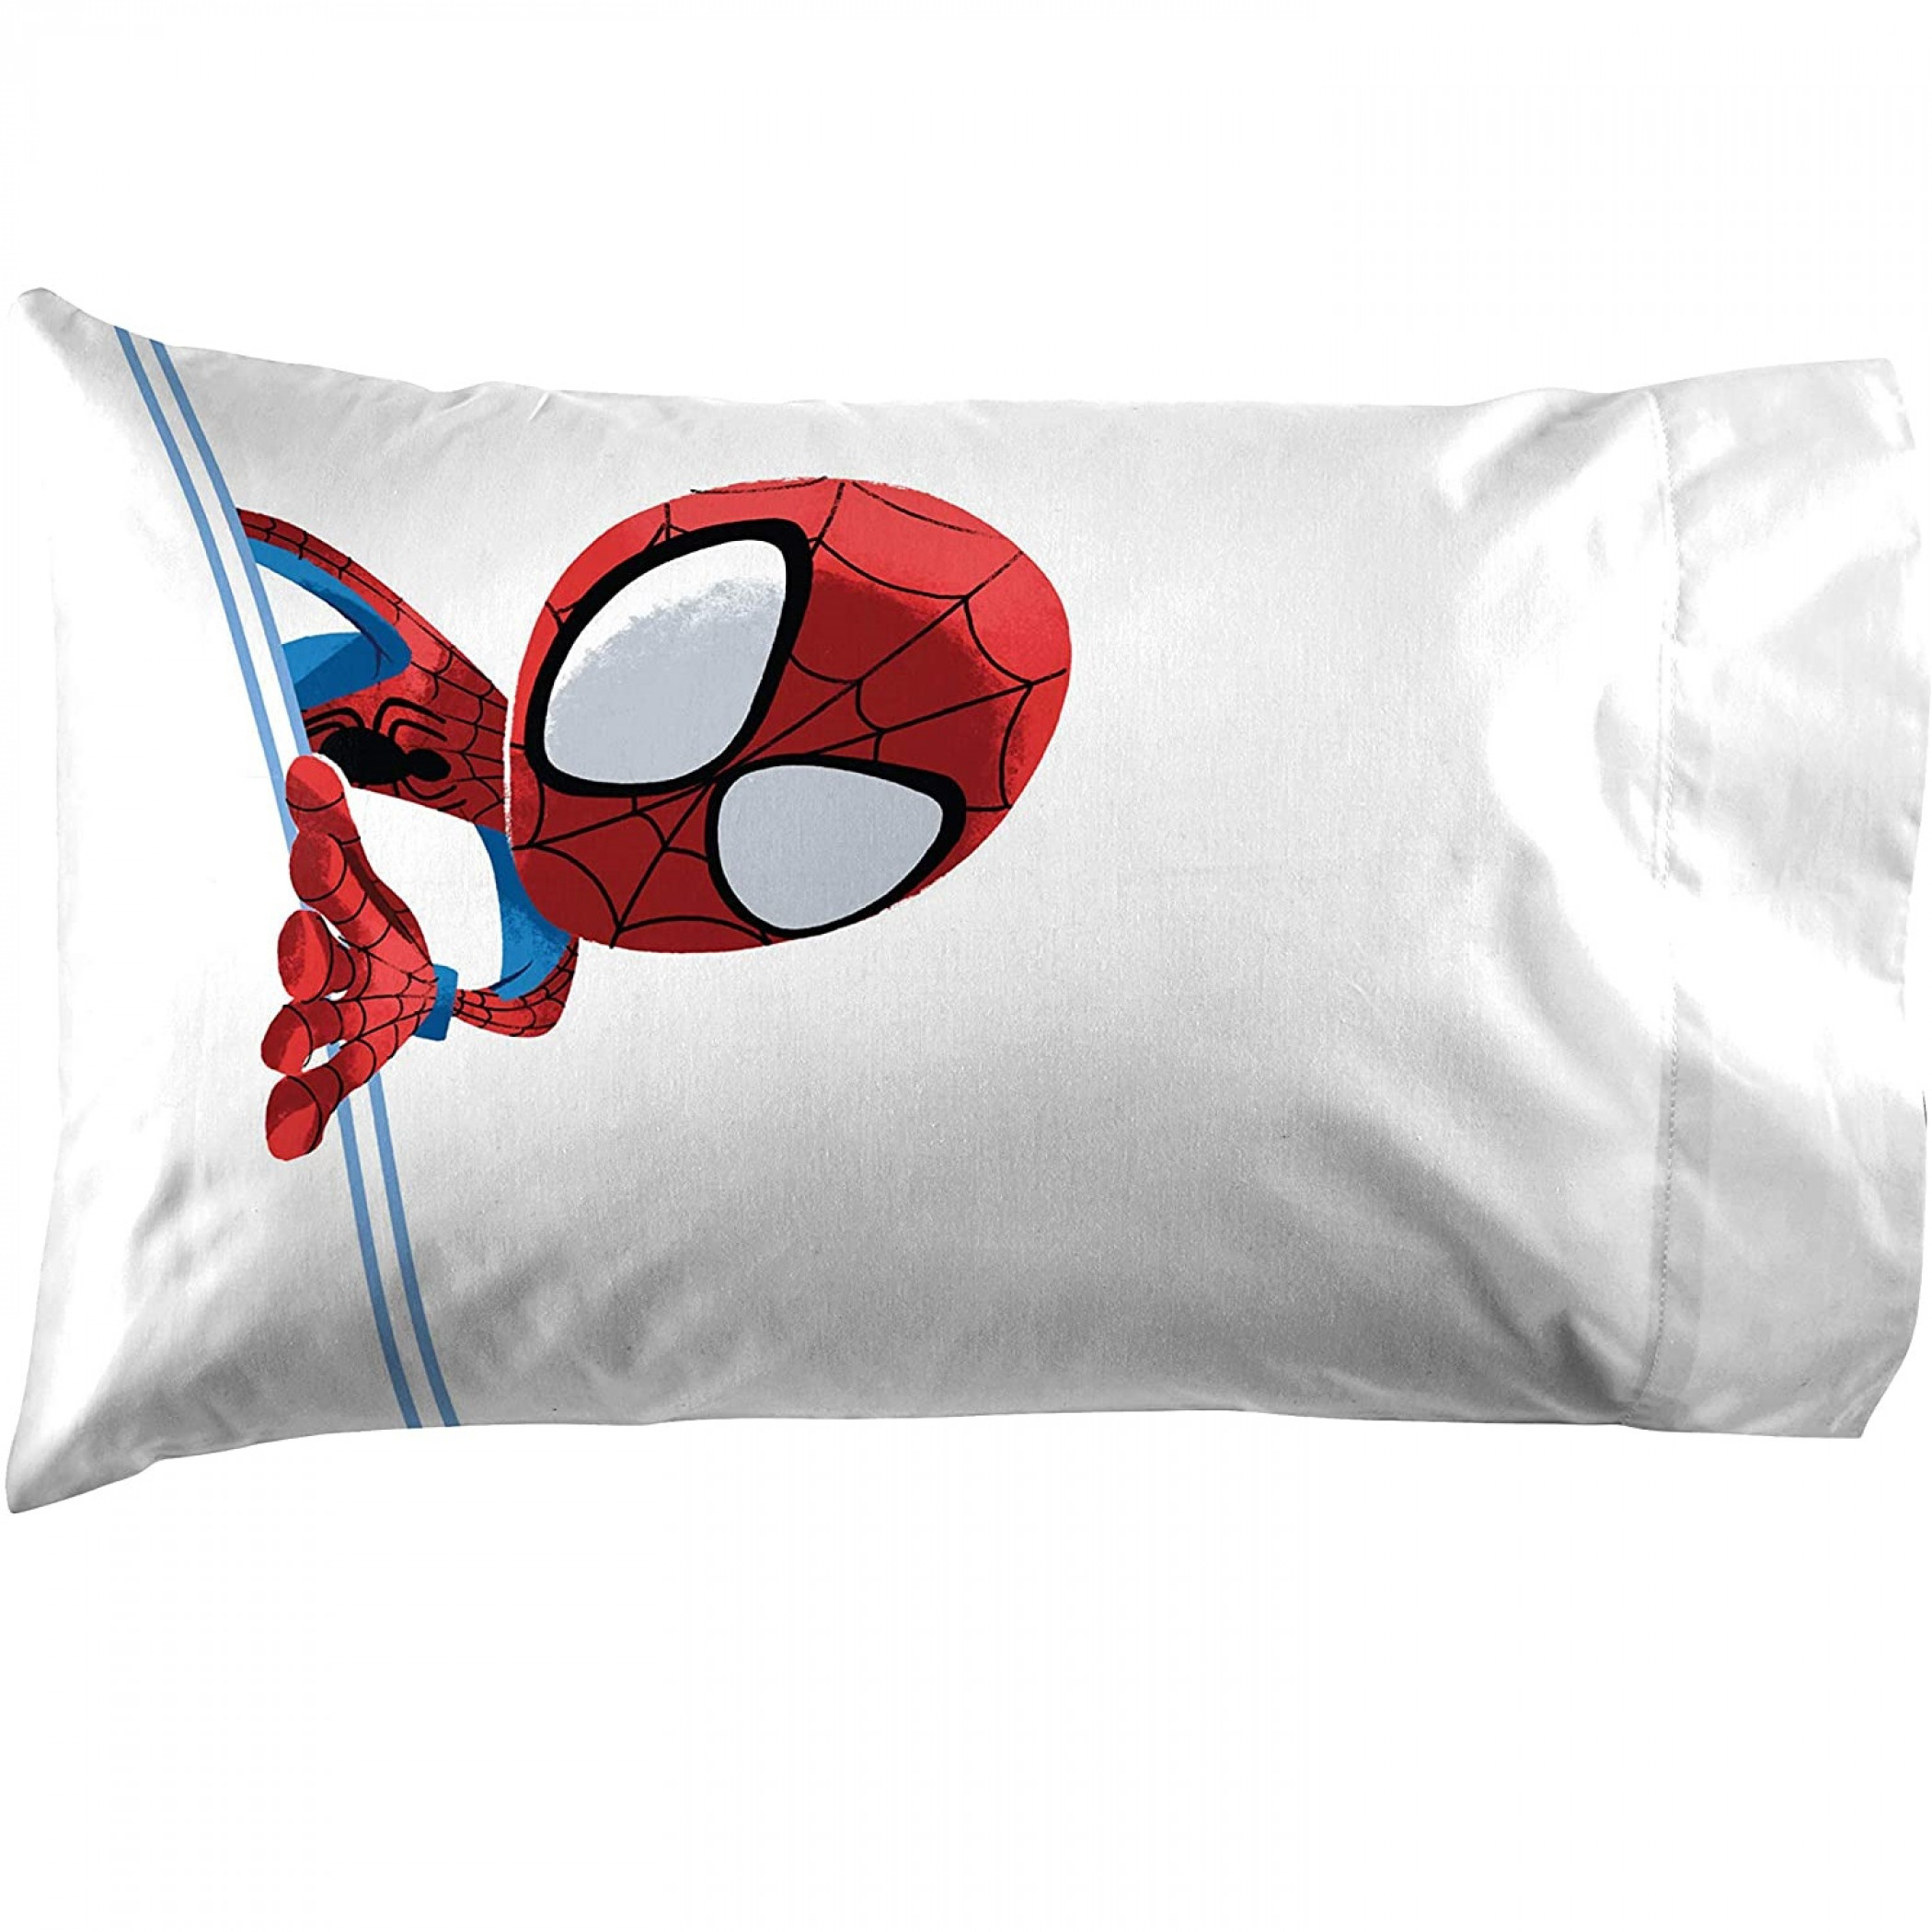 Marvel Spider-Man Hanging Out Pillowcase